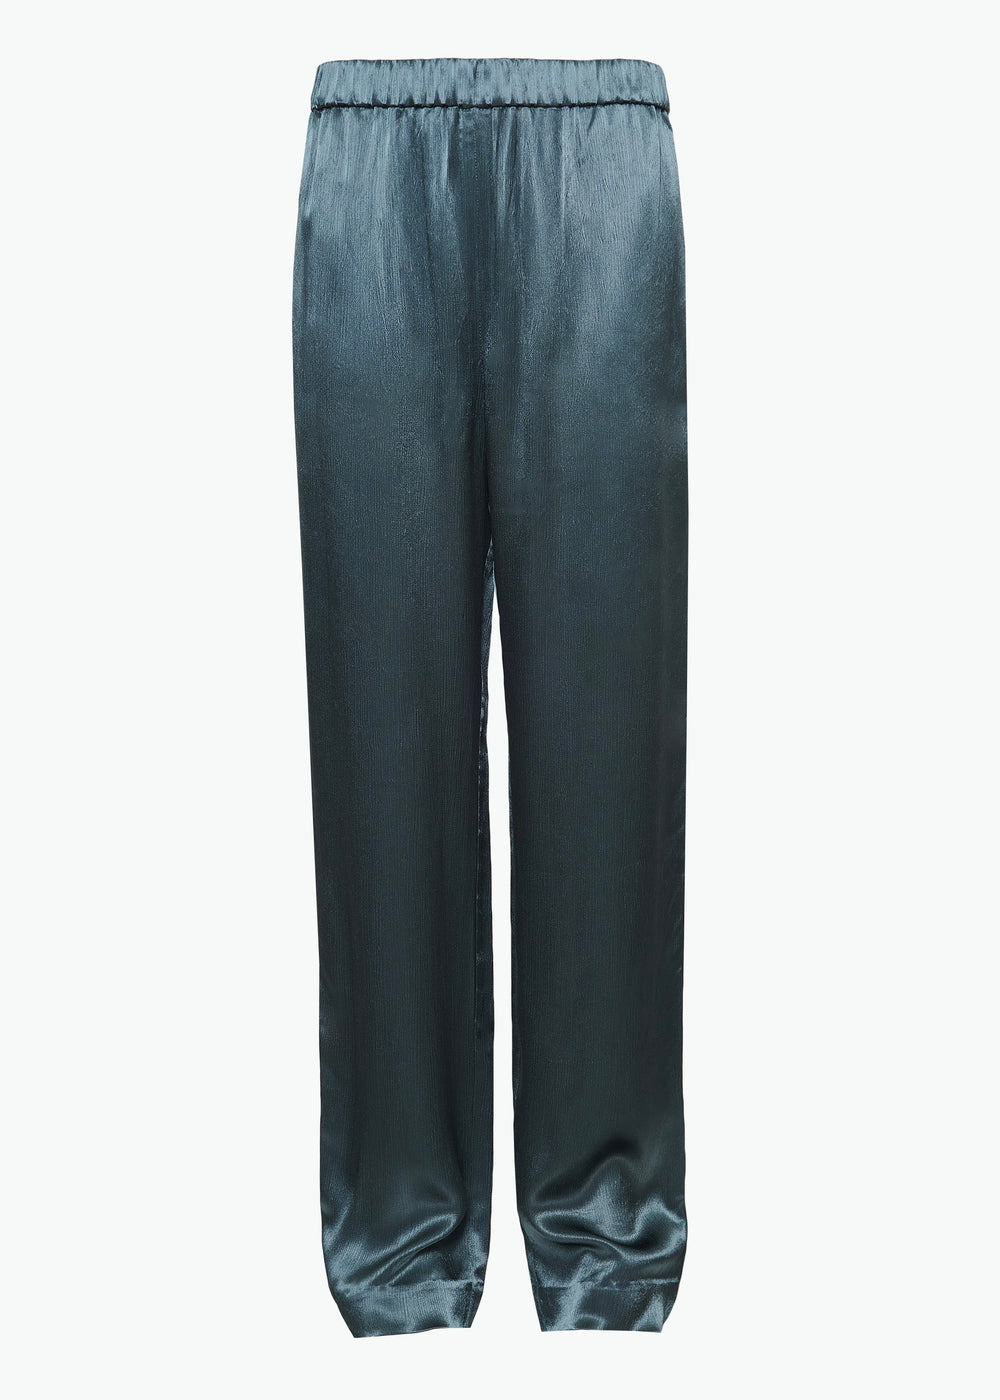 Elastic Waistband Pant in Crinkle Viscose - Teal - CO